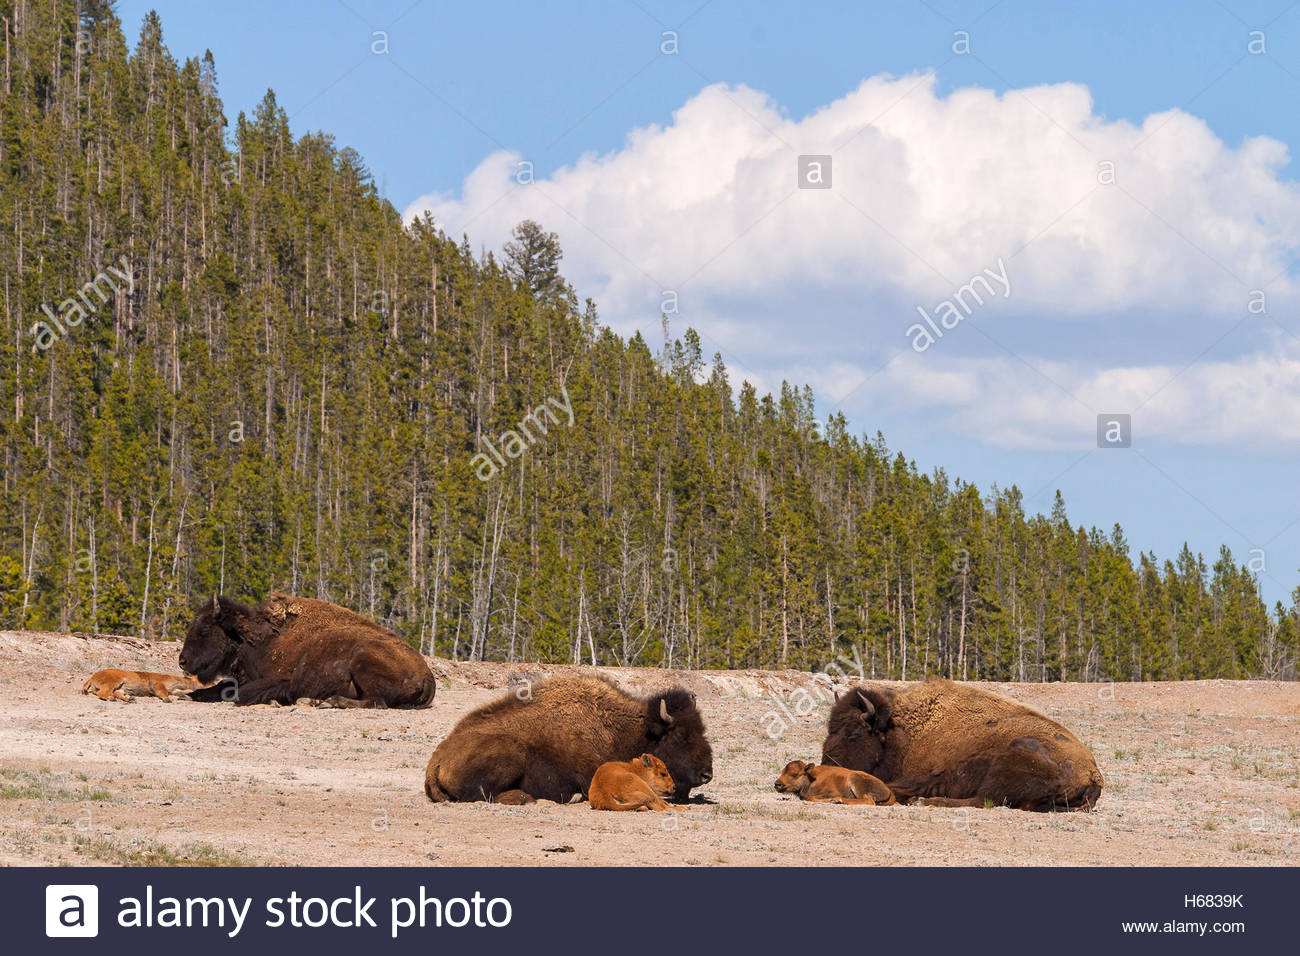 Three American bison (Bison bison) rest with their calves on an open field in Yellowstone National Park, Wyoming. Stock Photo